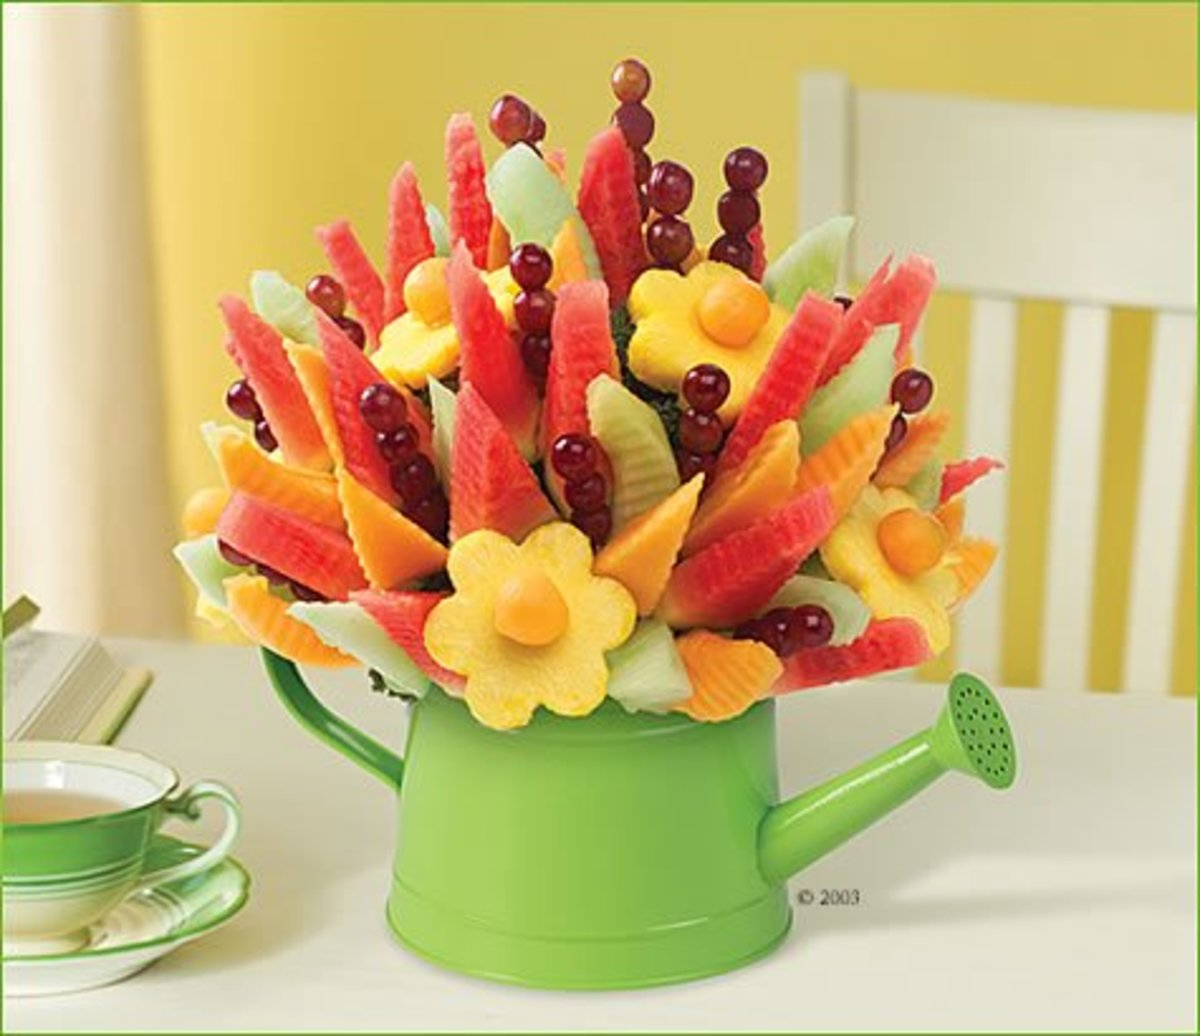 Fruit Bouquet from Edible Arrangements